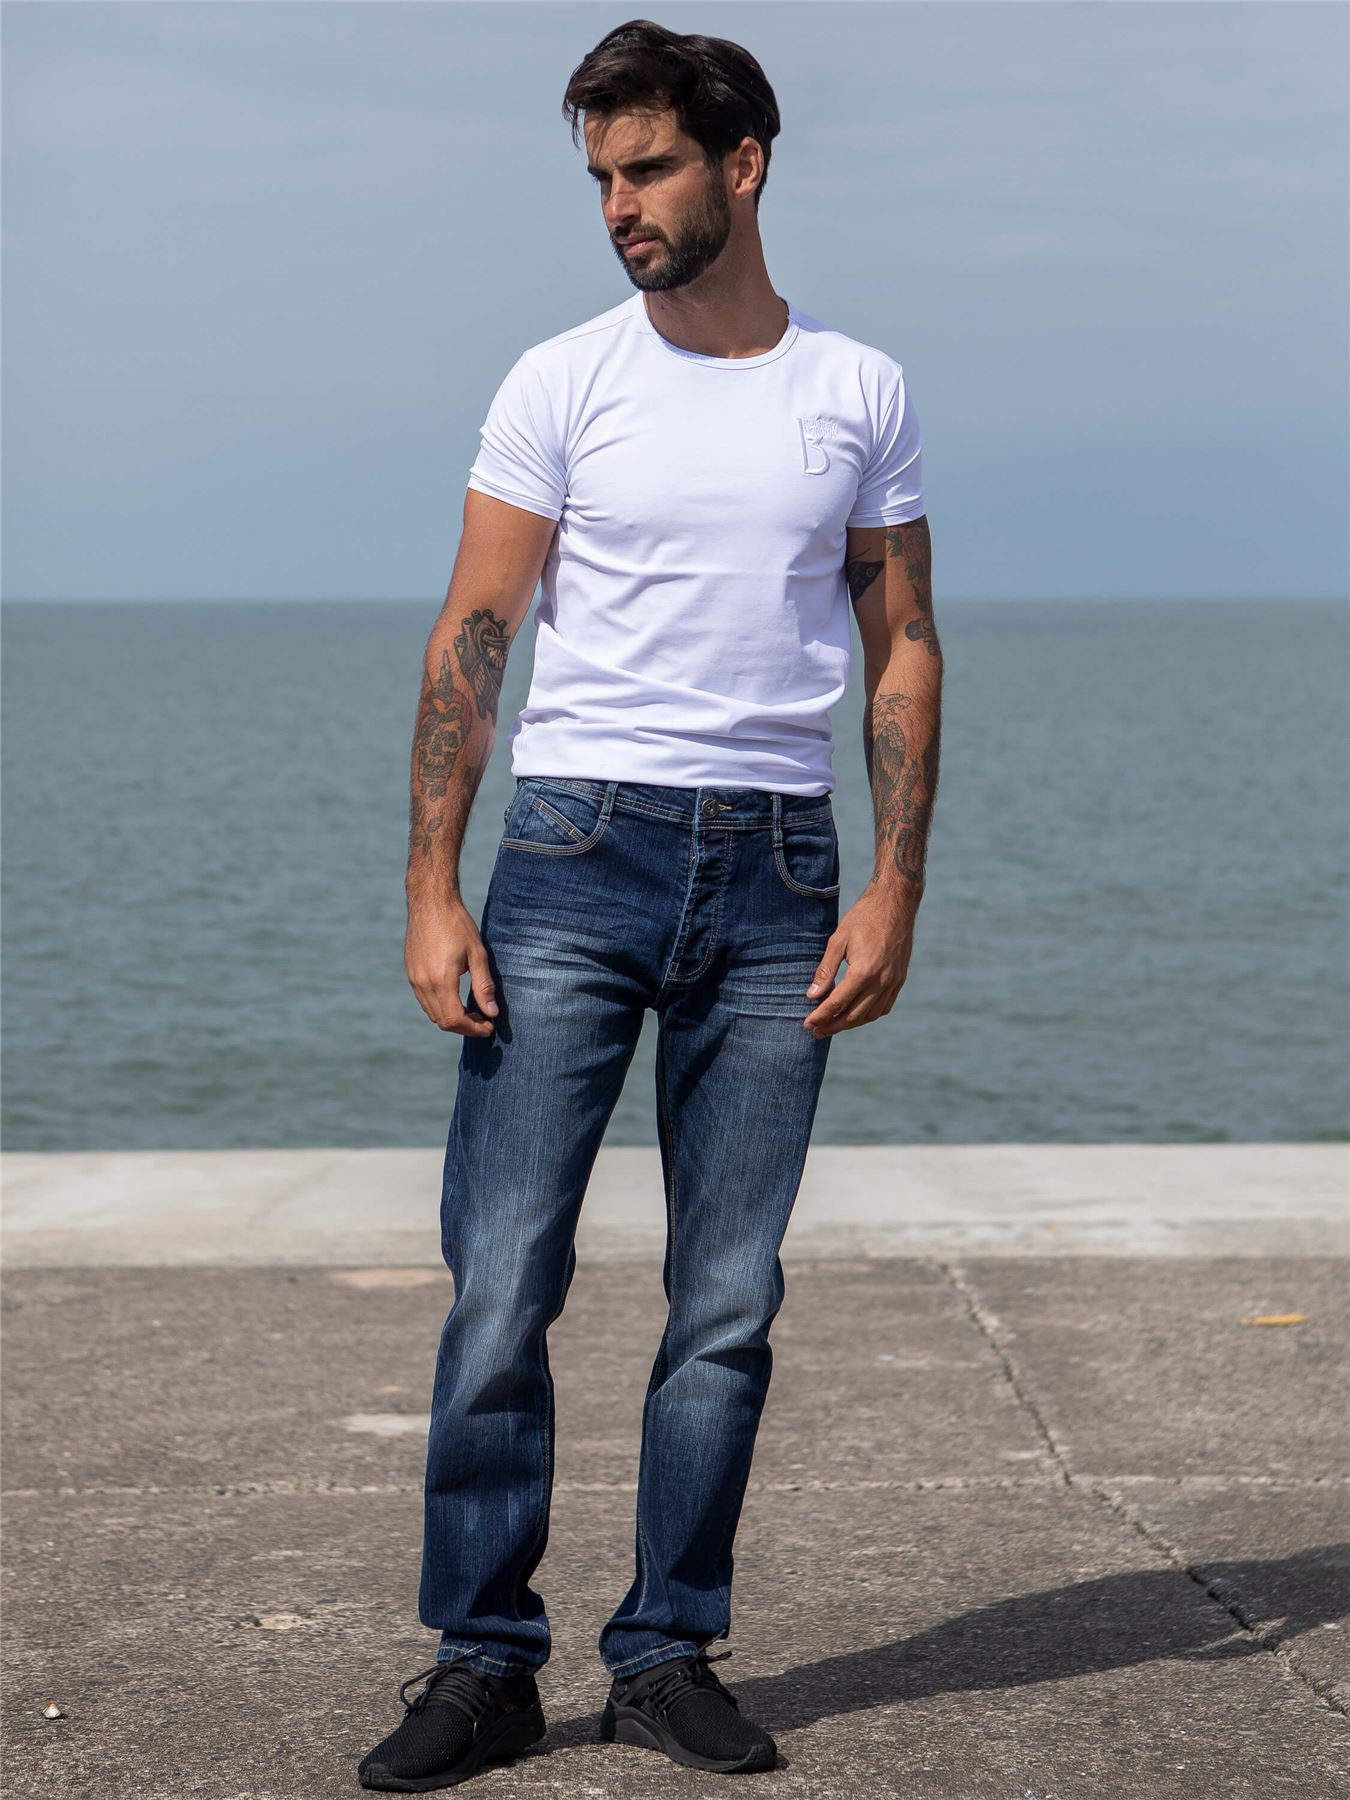 Eto-Designer-Mens-Tapered-Jeans-Slim-Fit-Stretch-Denim-Trouser-Pants-All-Waists thumbnail 8